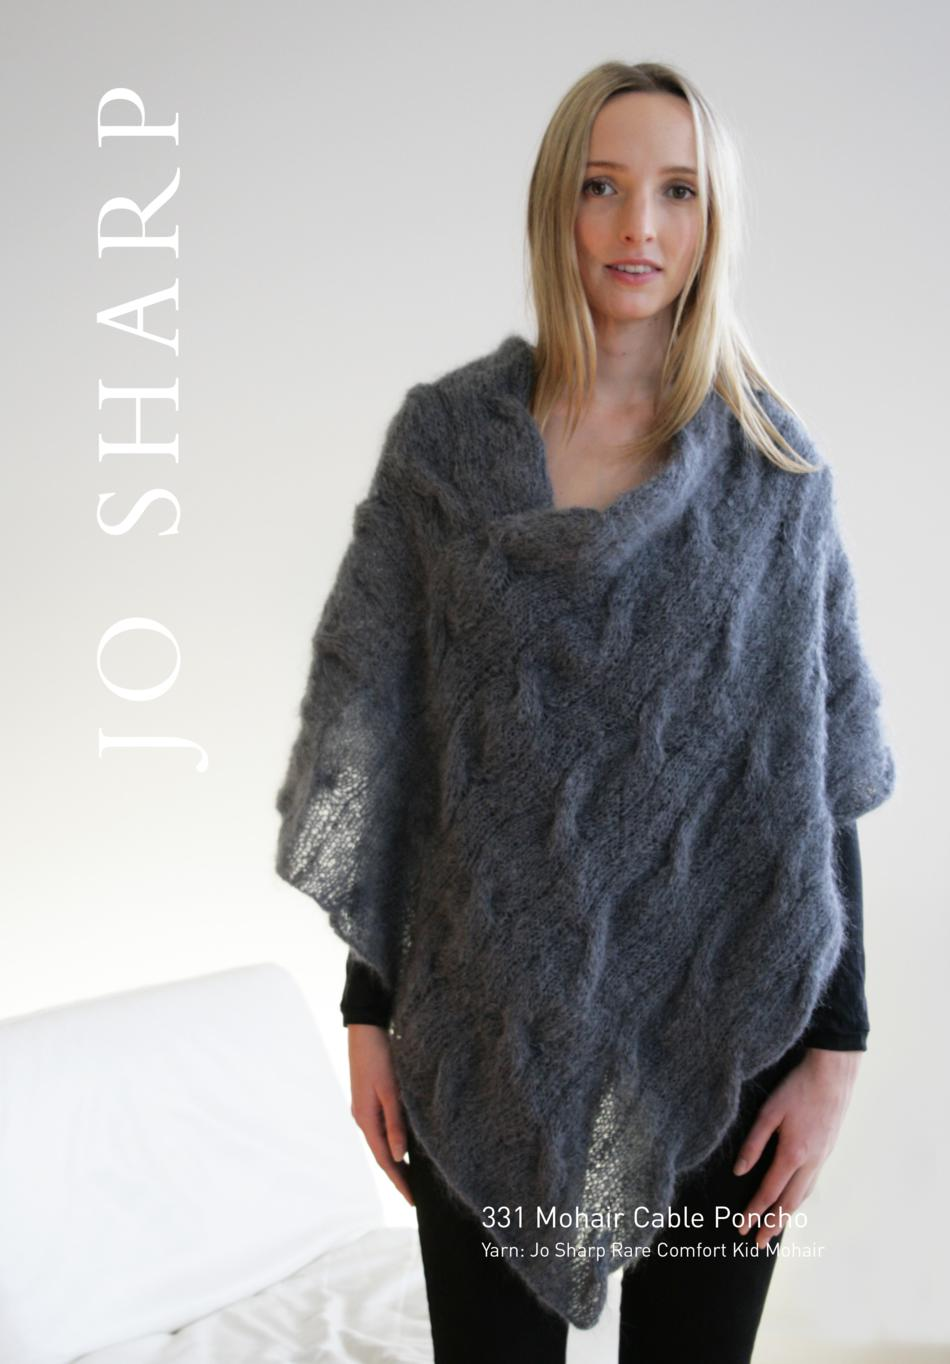 jo sharp mohair cable poncho pattern knitting pattern